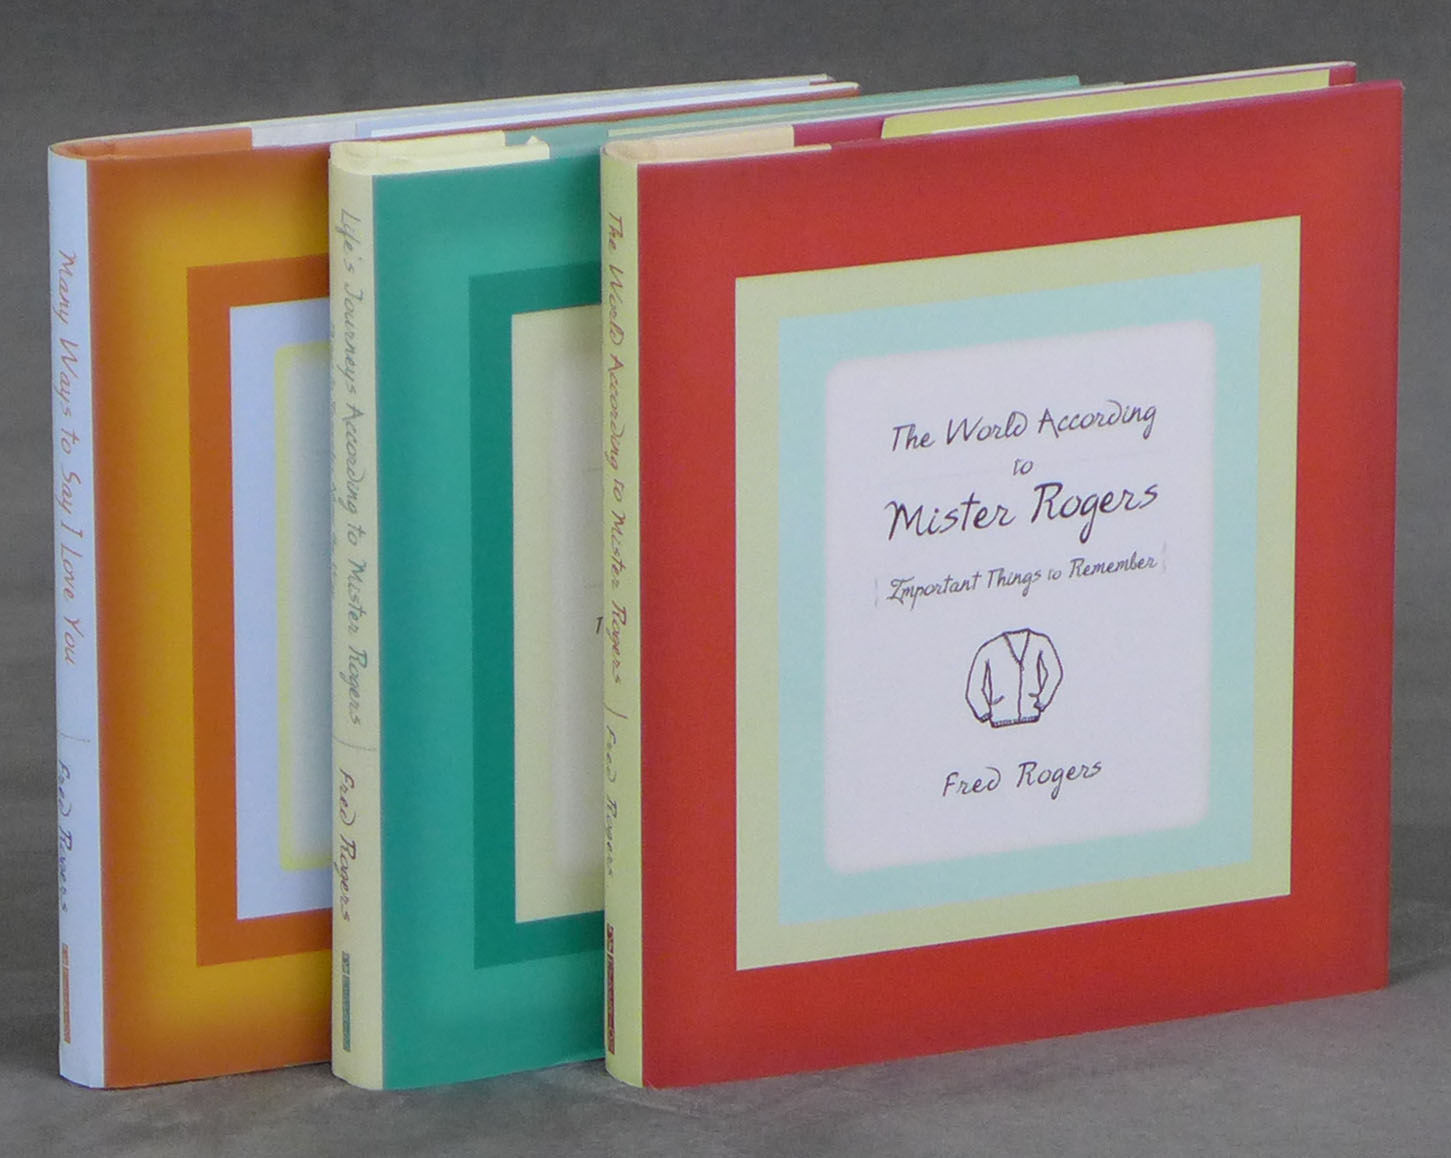 Three books by Fred Rogers, each signed by his wife Joanne